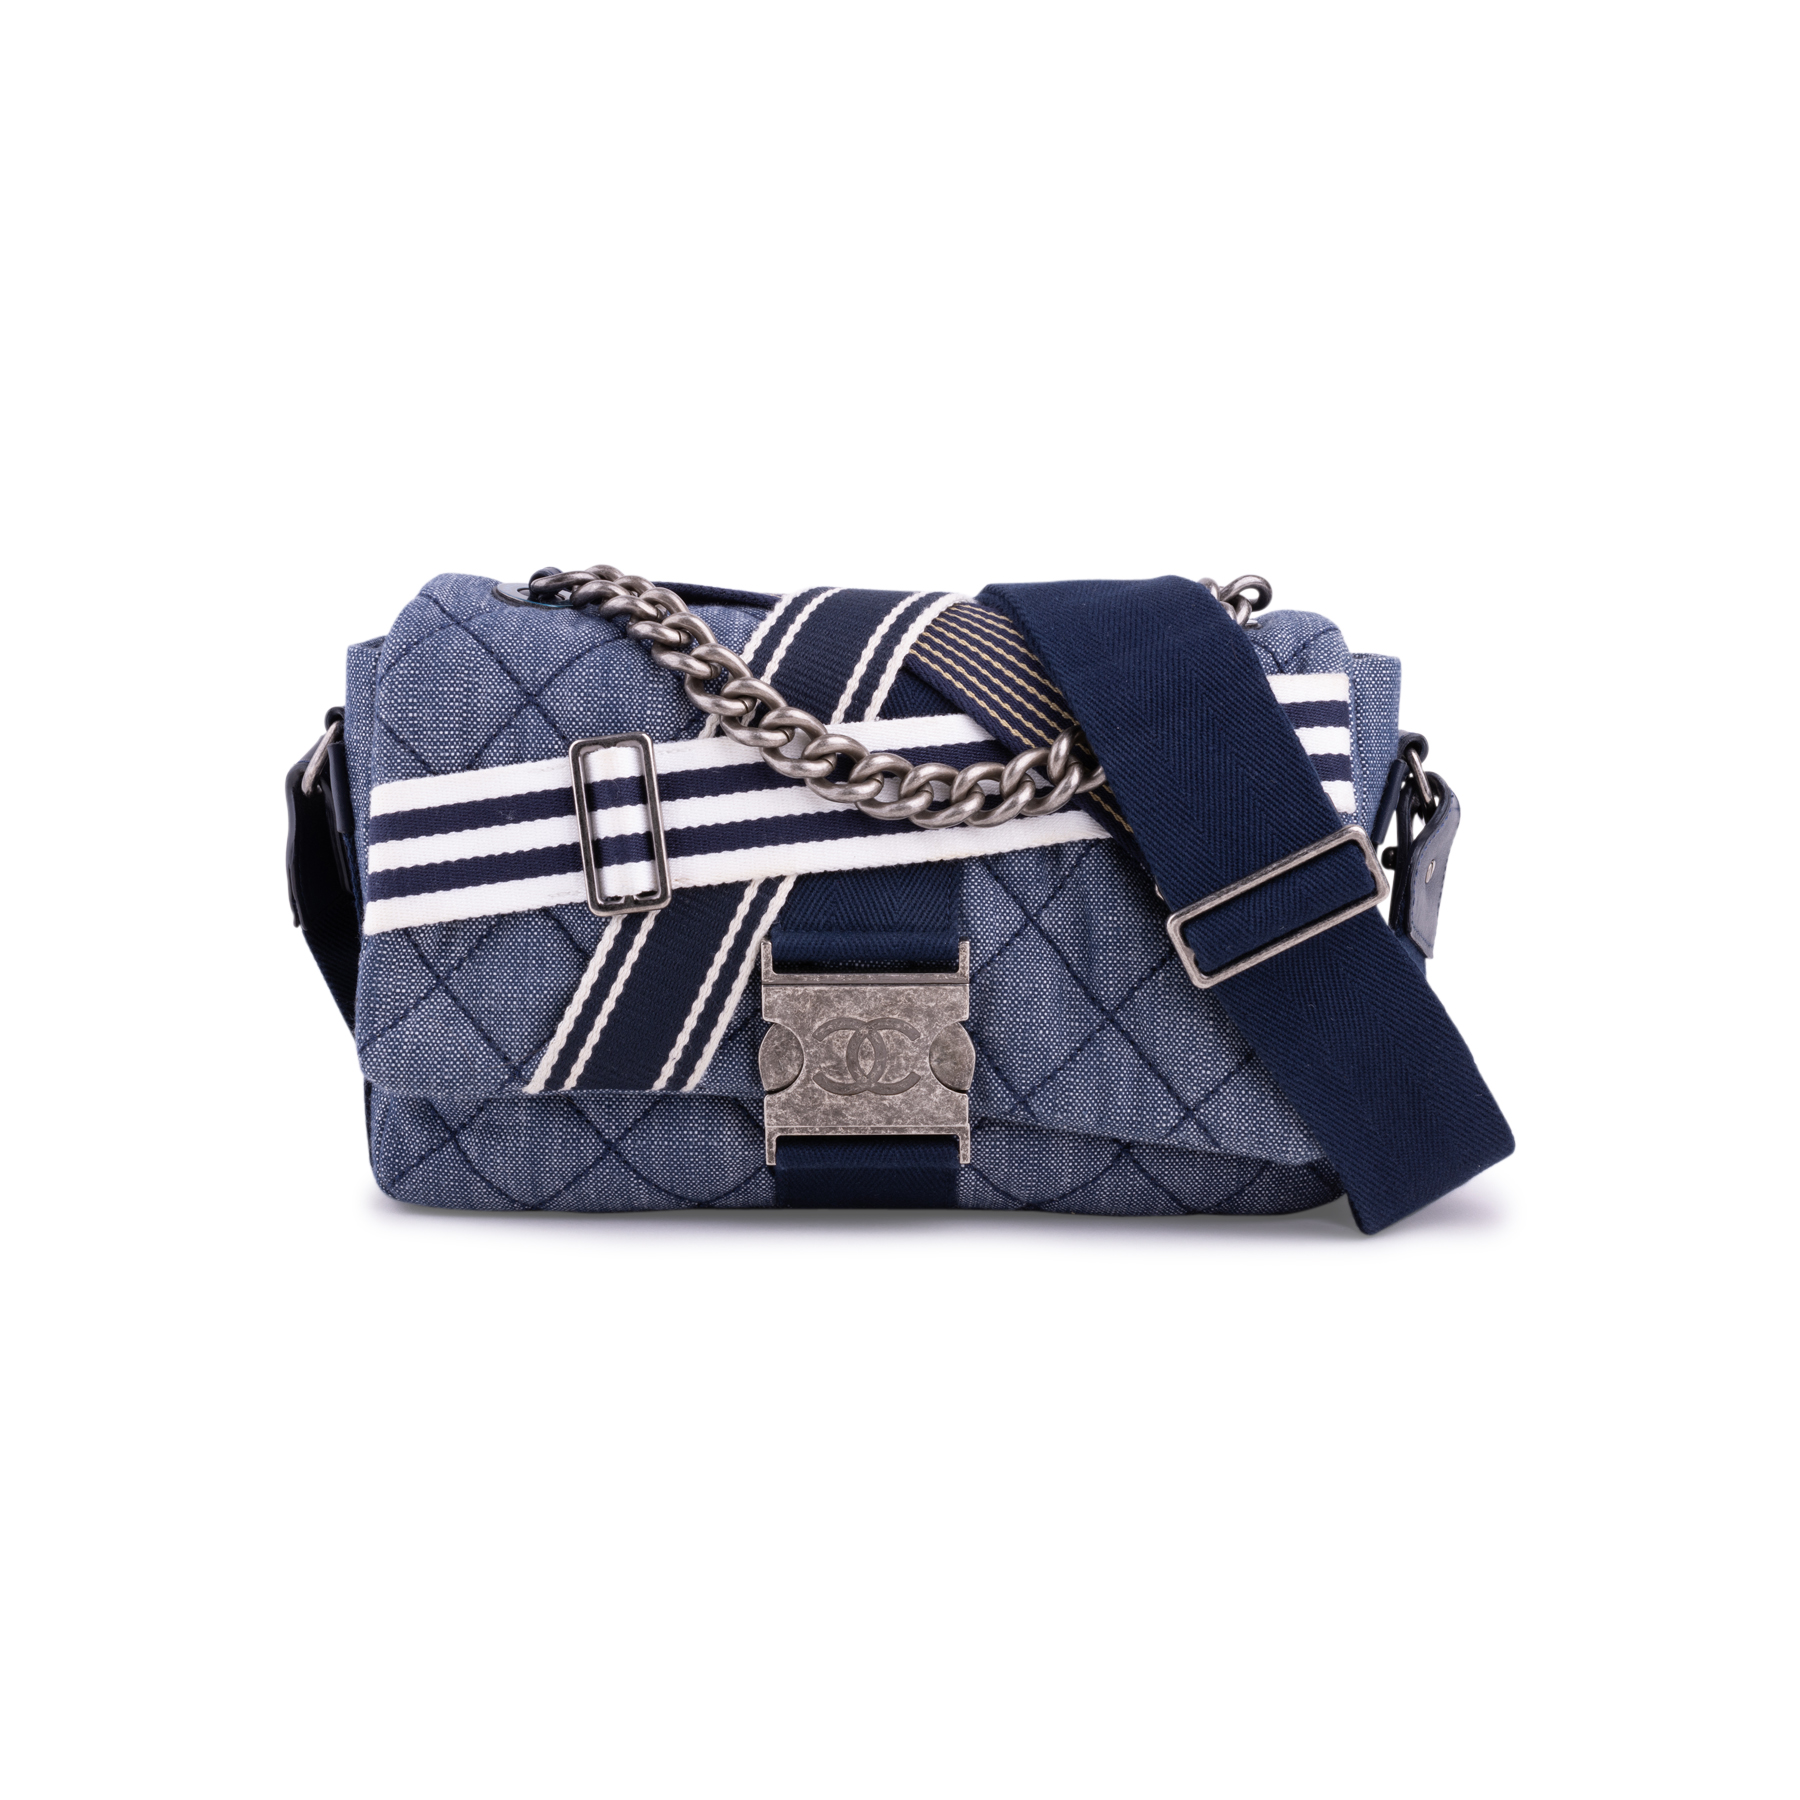 fbcc8b7cb083 Authentic Second Hand Chanel Chanel Airlines Denim and Toile Flap Bag (PSS- 200-01669) | THE FIFTH COLLECTION